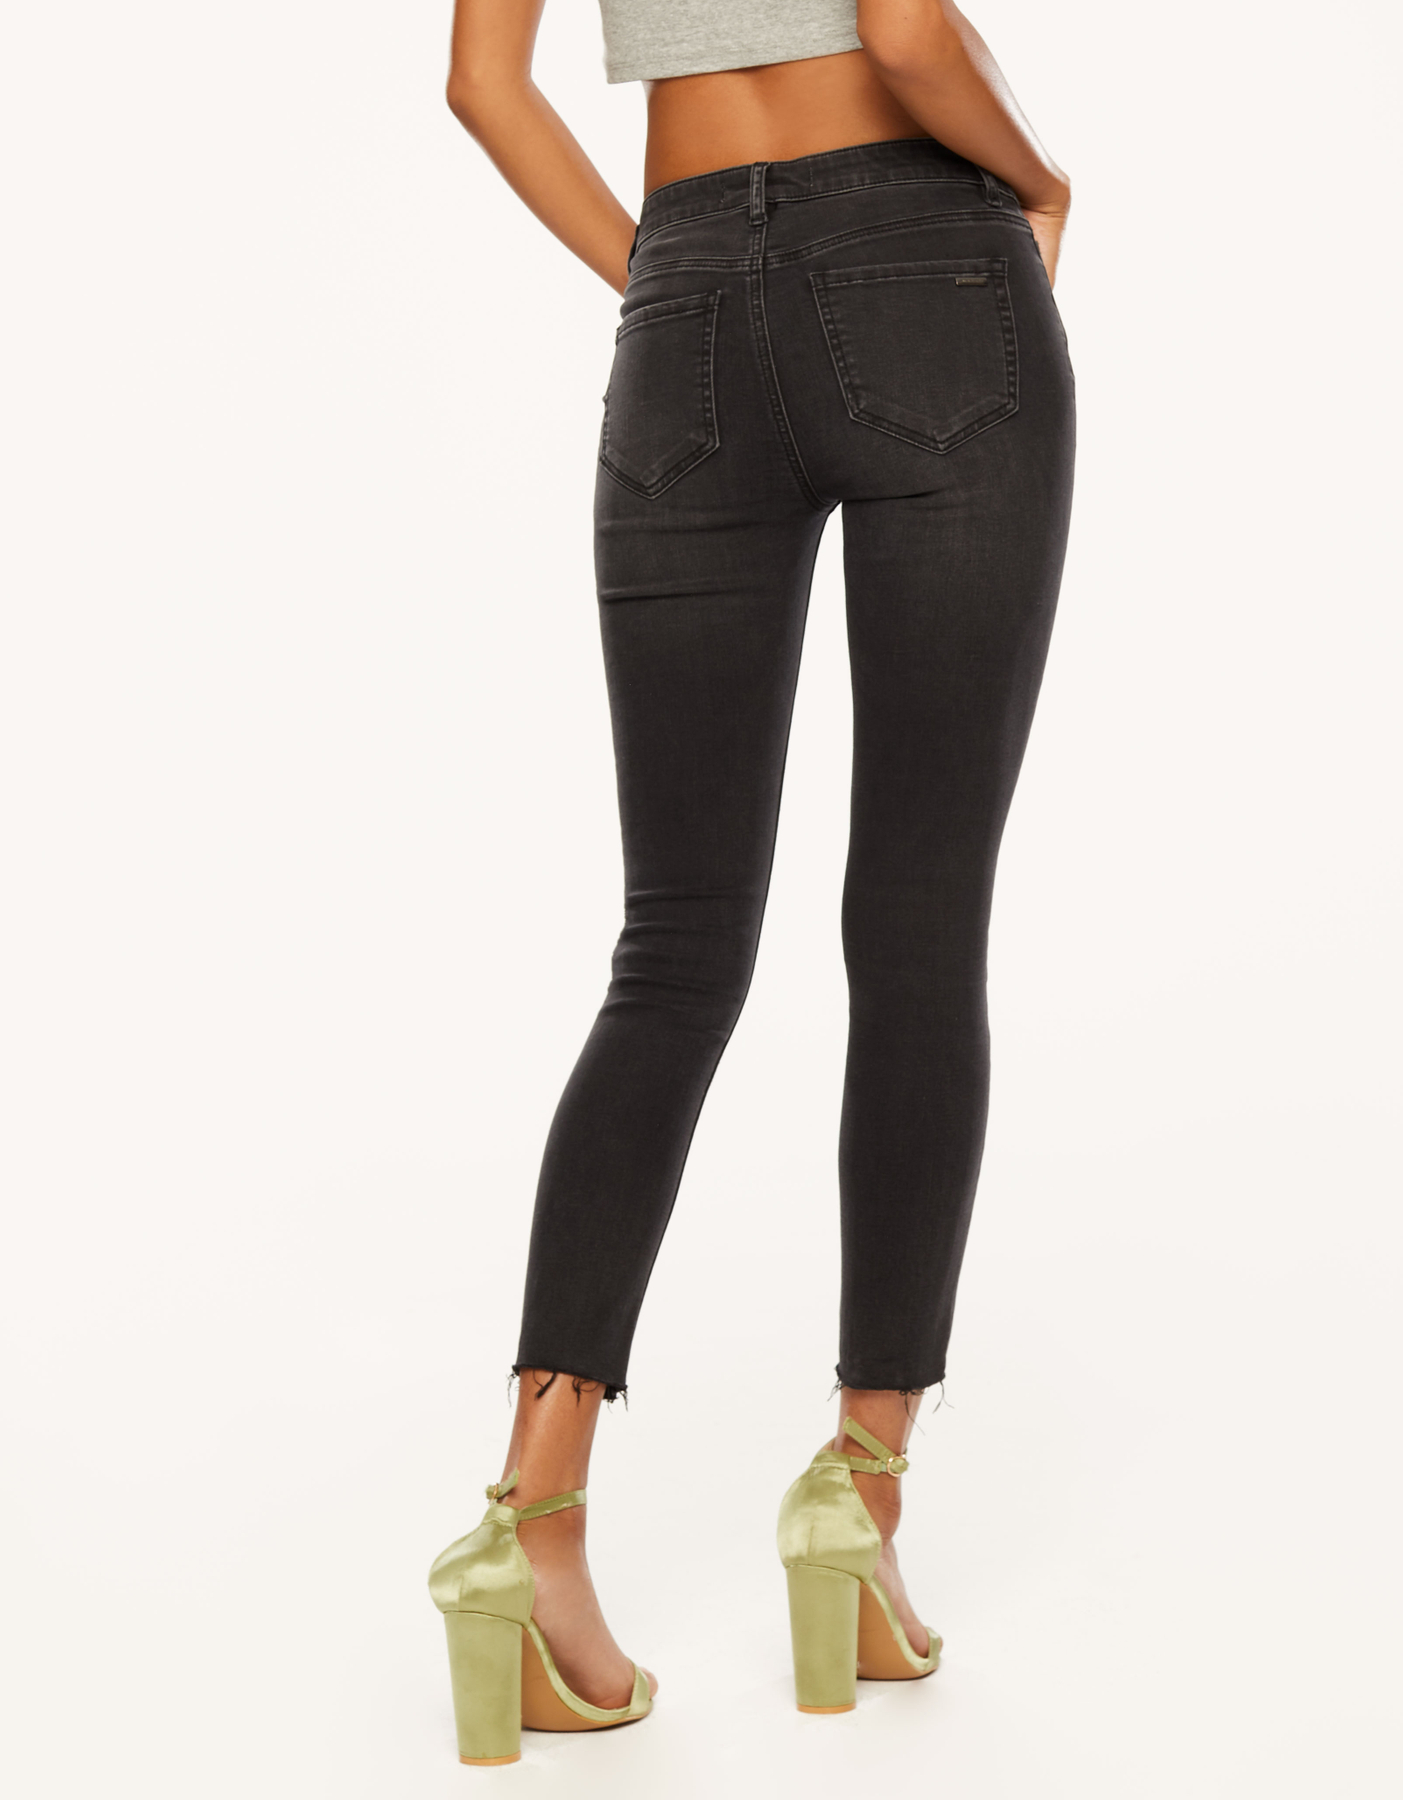 Low Waist Button Up Jeans